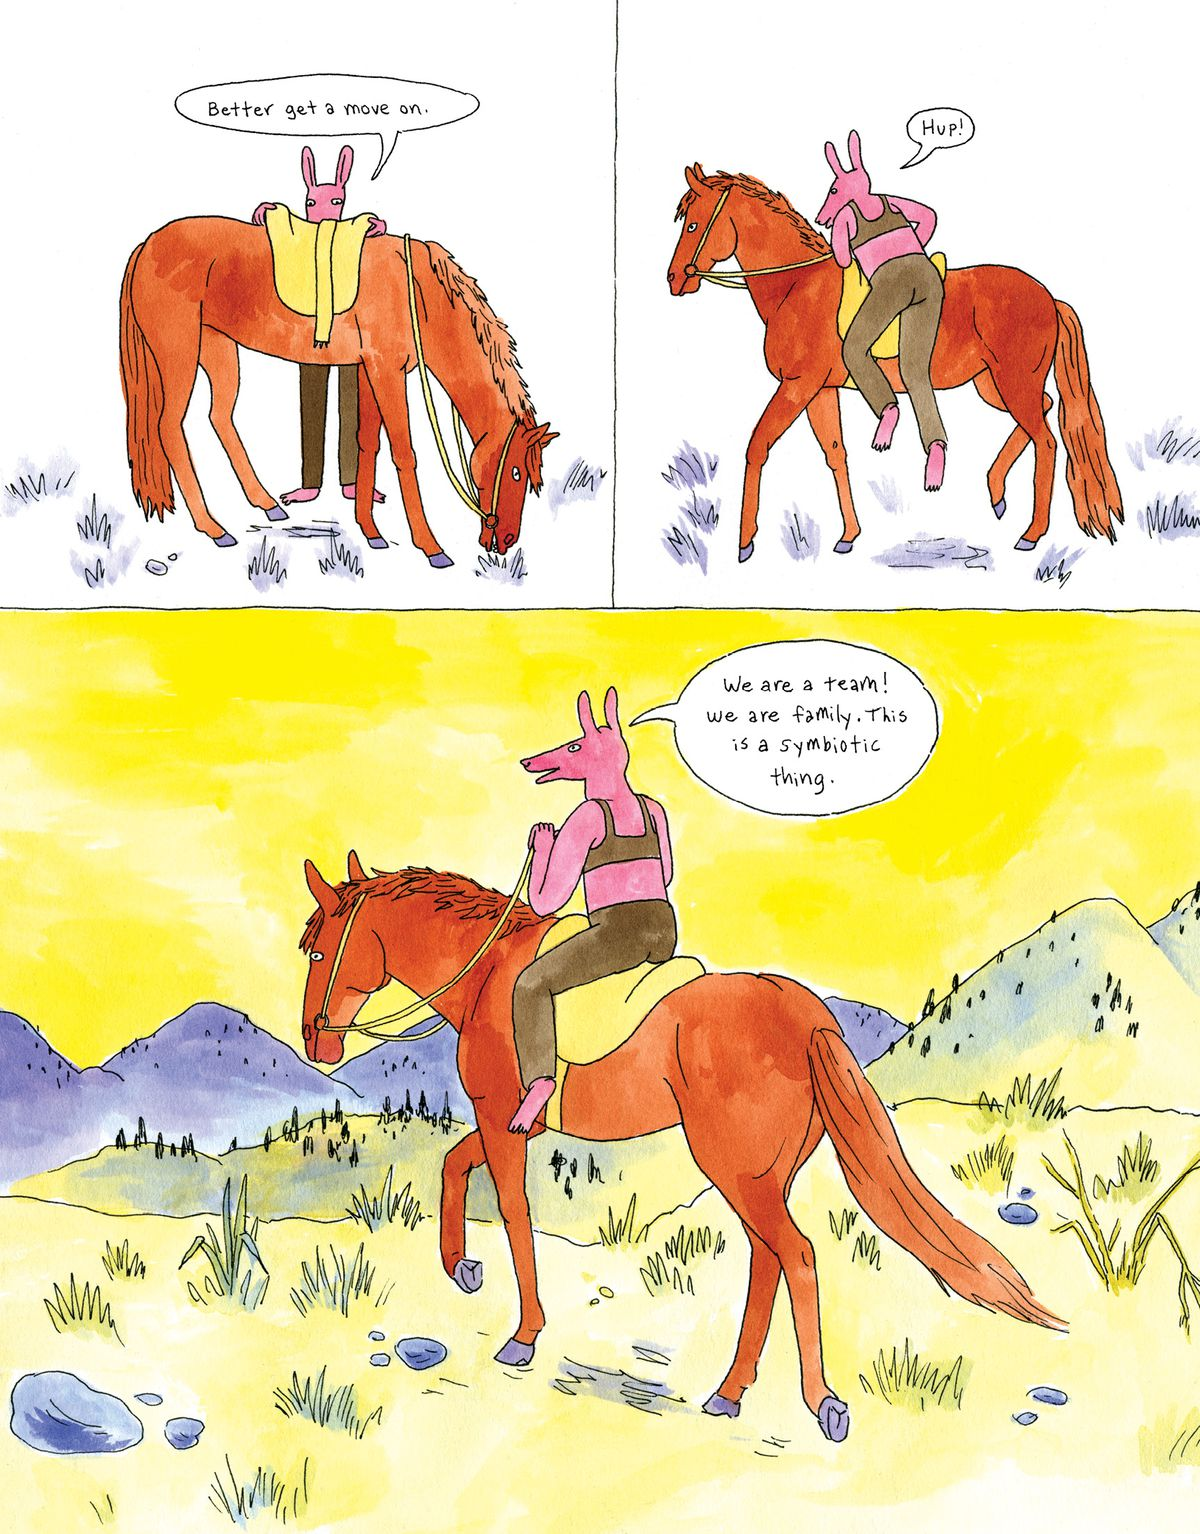 """""""Better get a move on,"""" the girl says as she saddles up her horse. """"We are a team! We are family. This is a symbiotic thing,"""" she says as they ride off."""